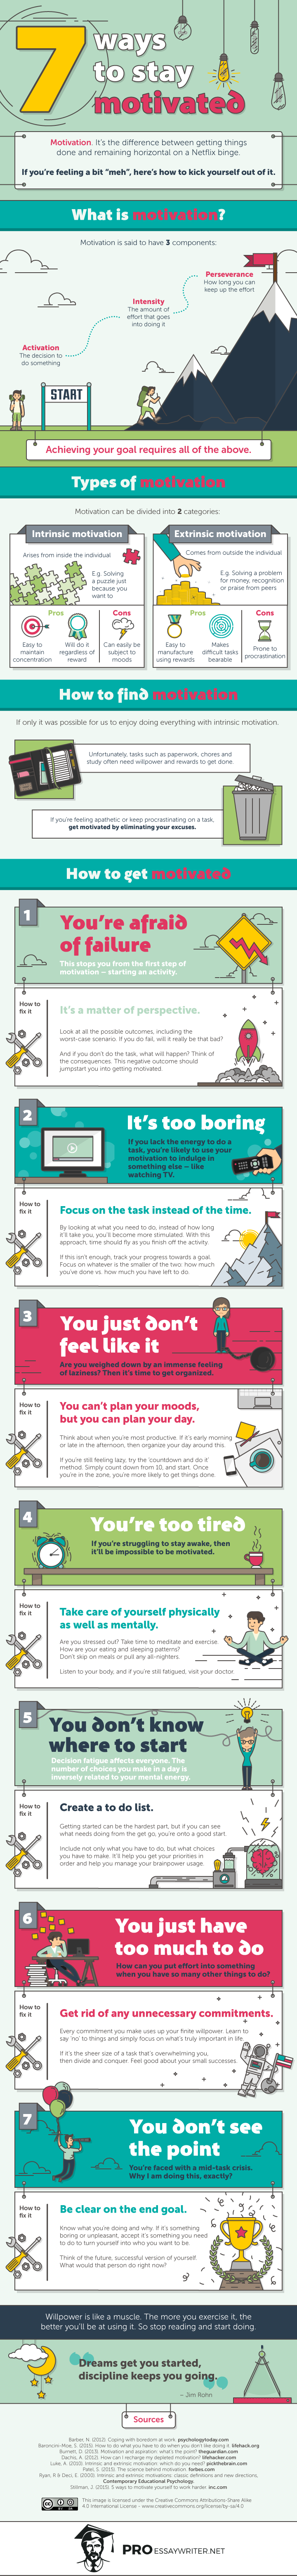 7 Terrific Self Motivating Tips- infographic